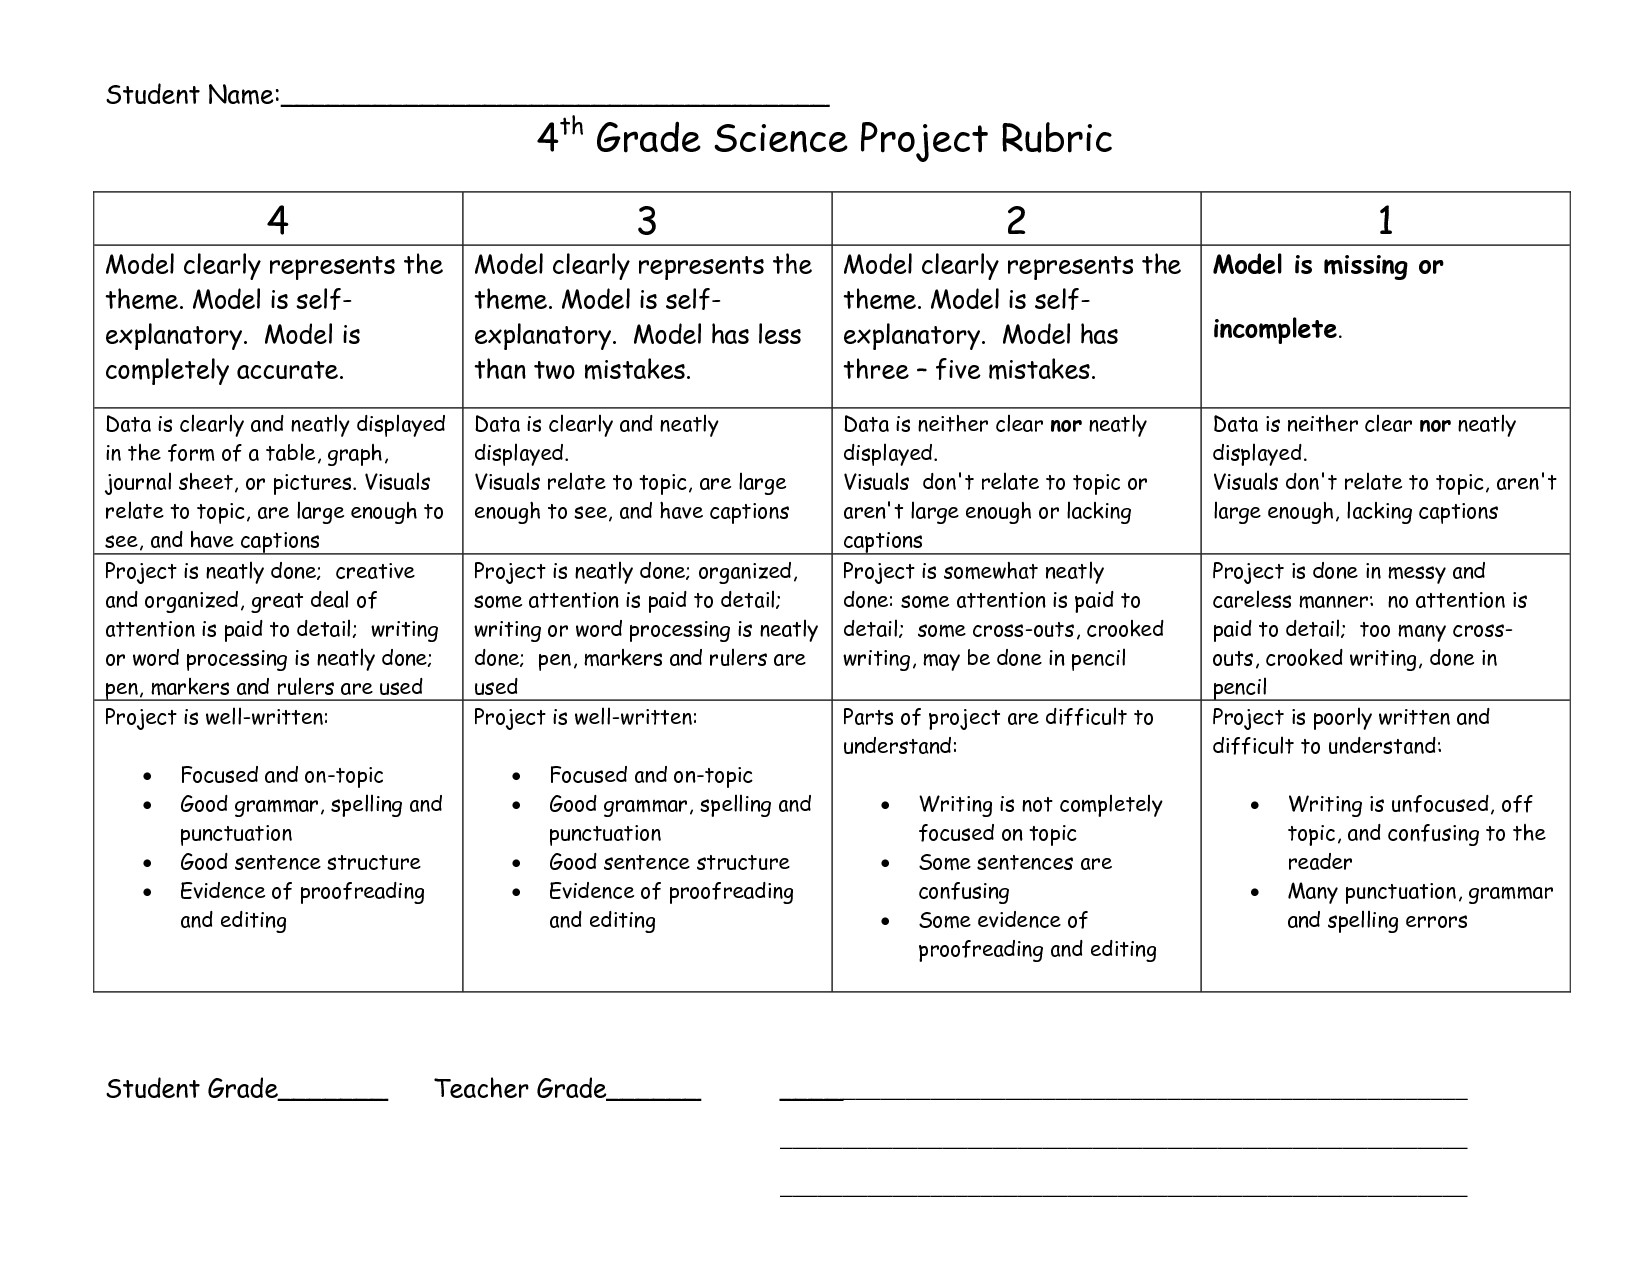 Science Project Rubric Template 4th Grade Science Project Rubric